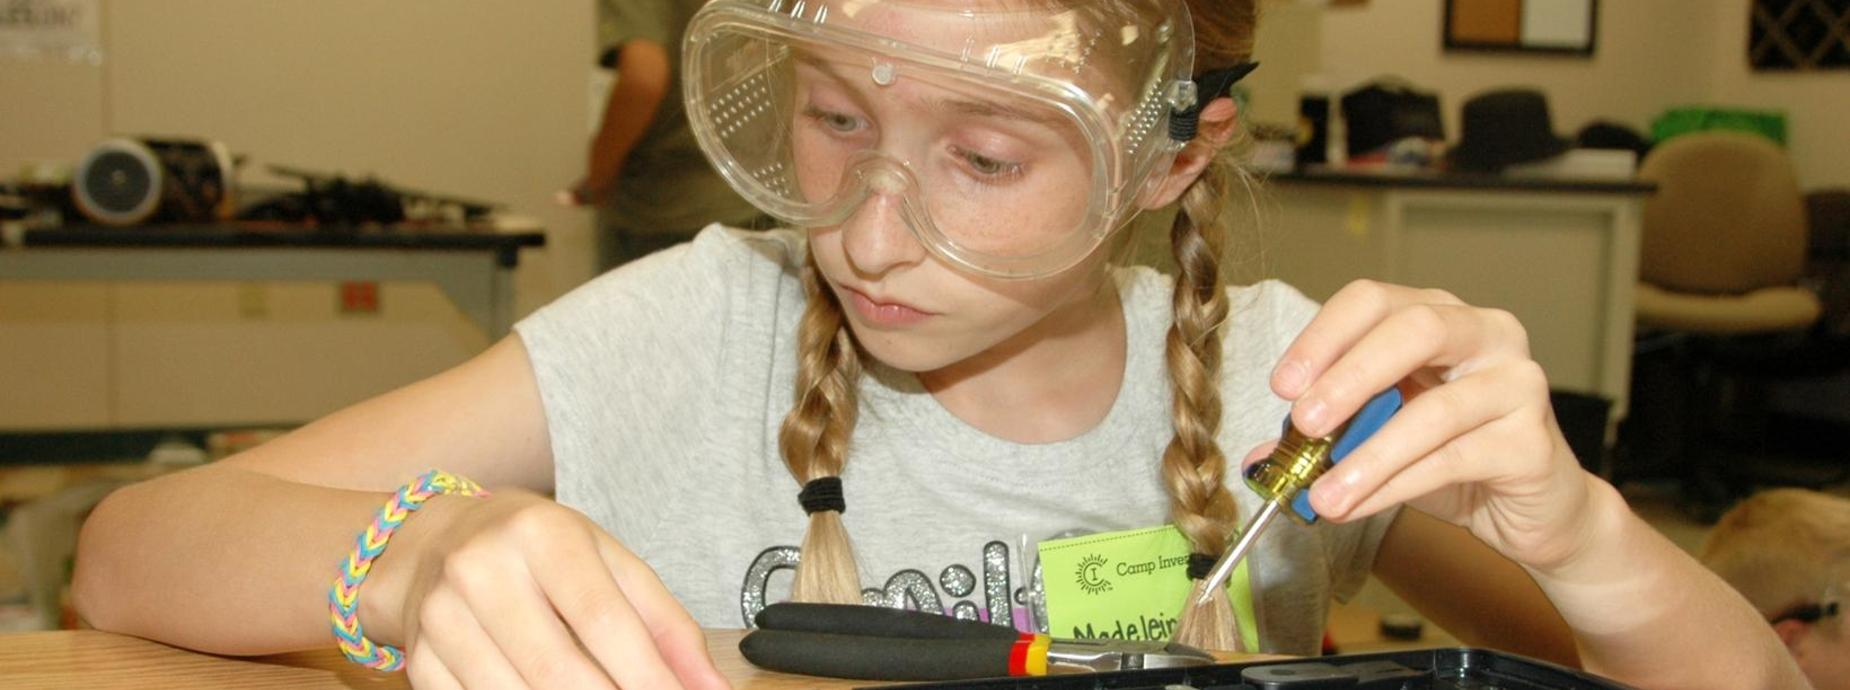 Student doing Science Experiment